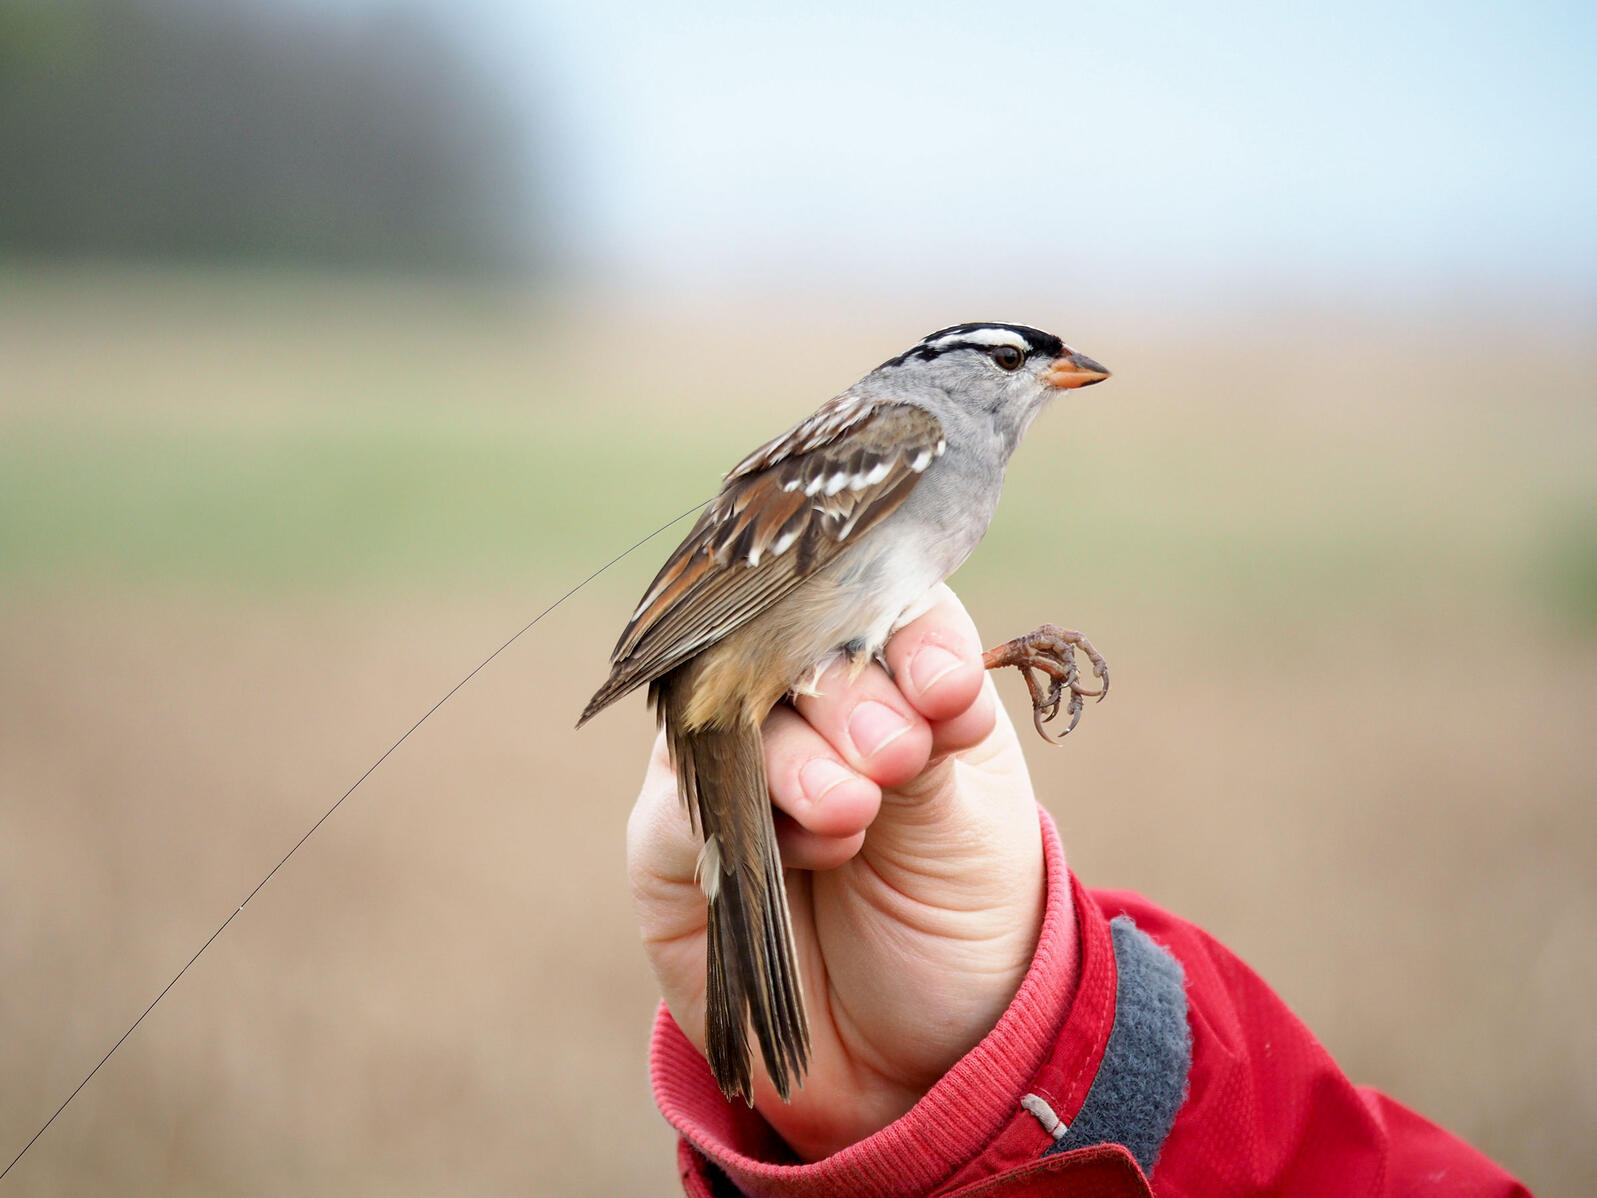 A White-crowned Sparrow affixed with a lightweight digitally-coded radio transmitter (nanotag) that broadcasts signals detected by receiver towers in the Motus automated telemetry network. Margaret Eng